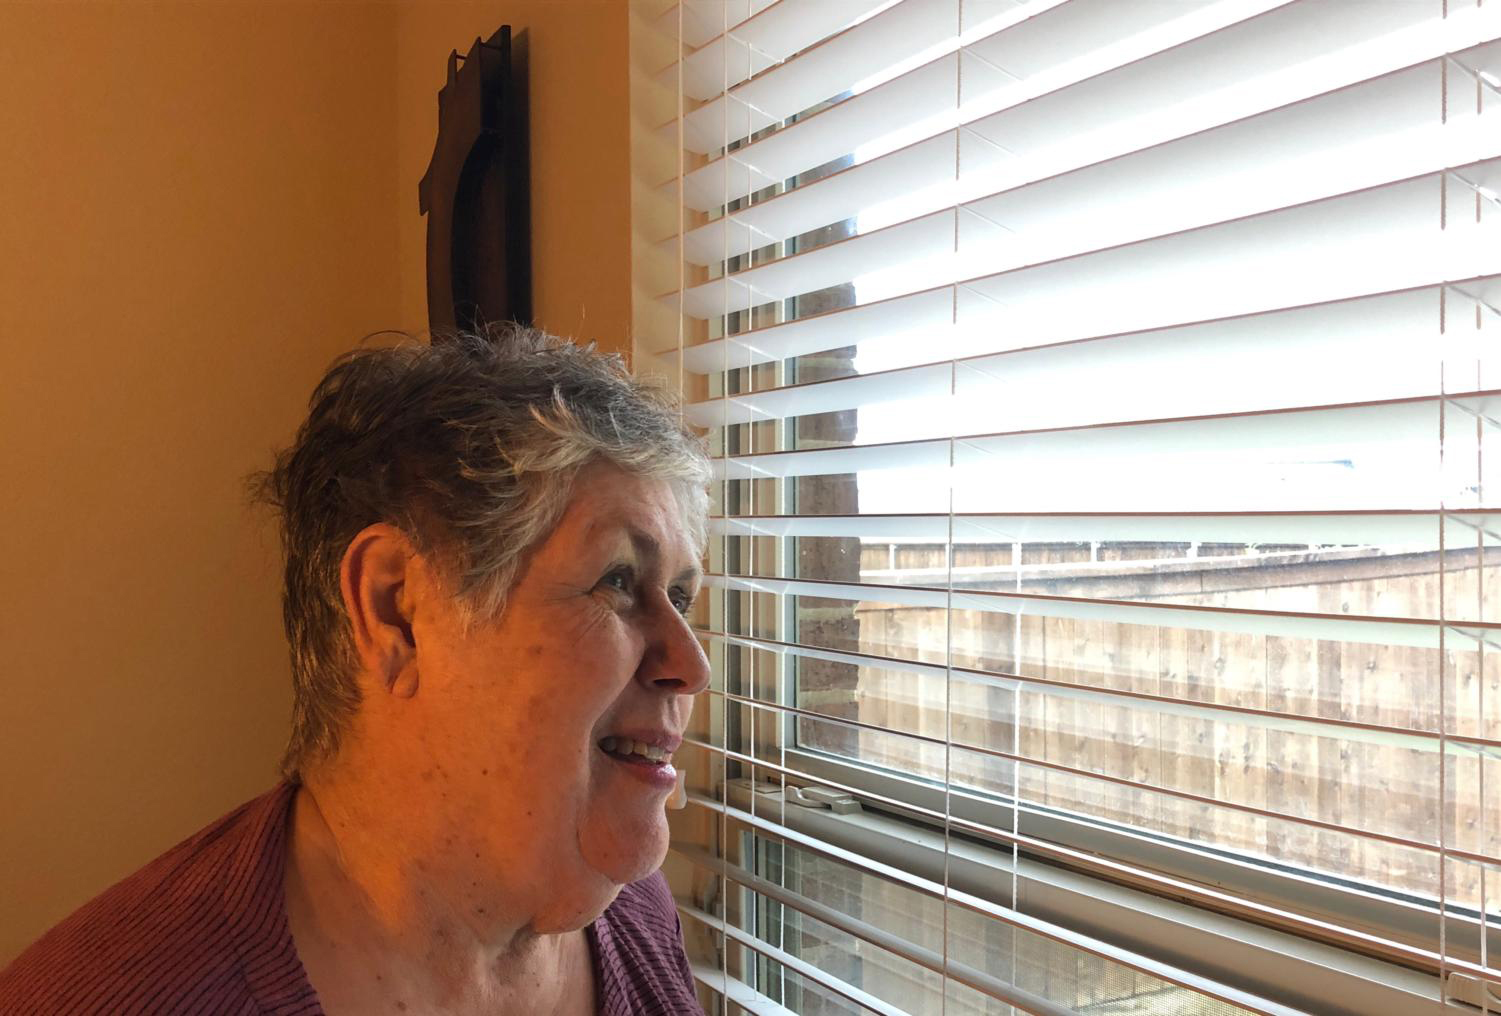 Survivor Sandra Johnson looks out a window as she talks about her battle with breast cancer. In the attached column, Johnson's granddaughter shares her feelings on the diagnosis.